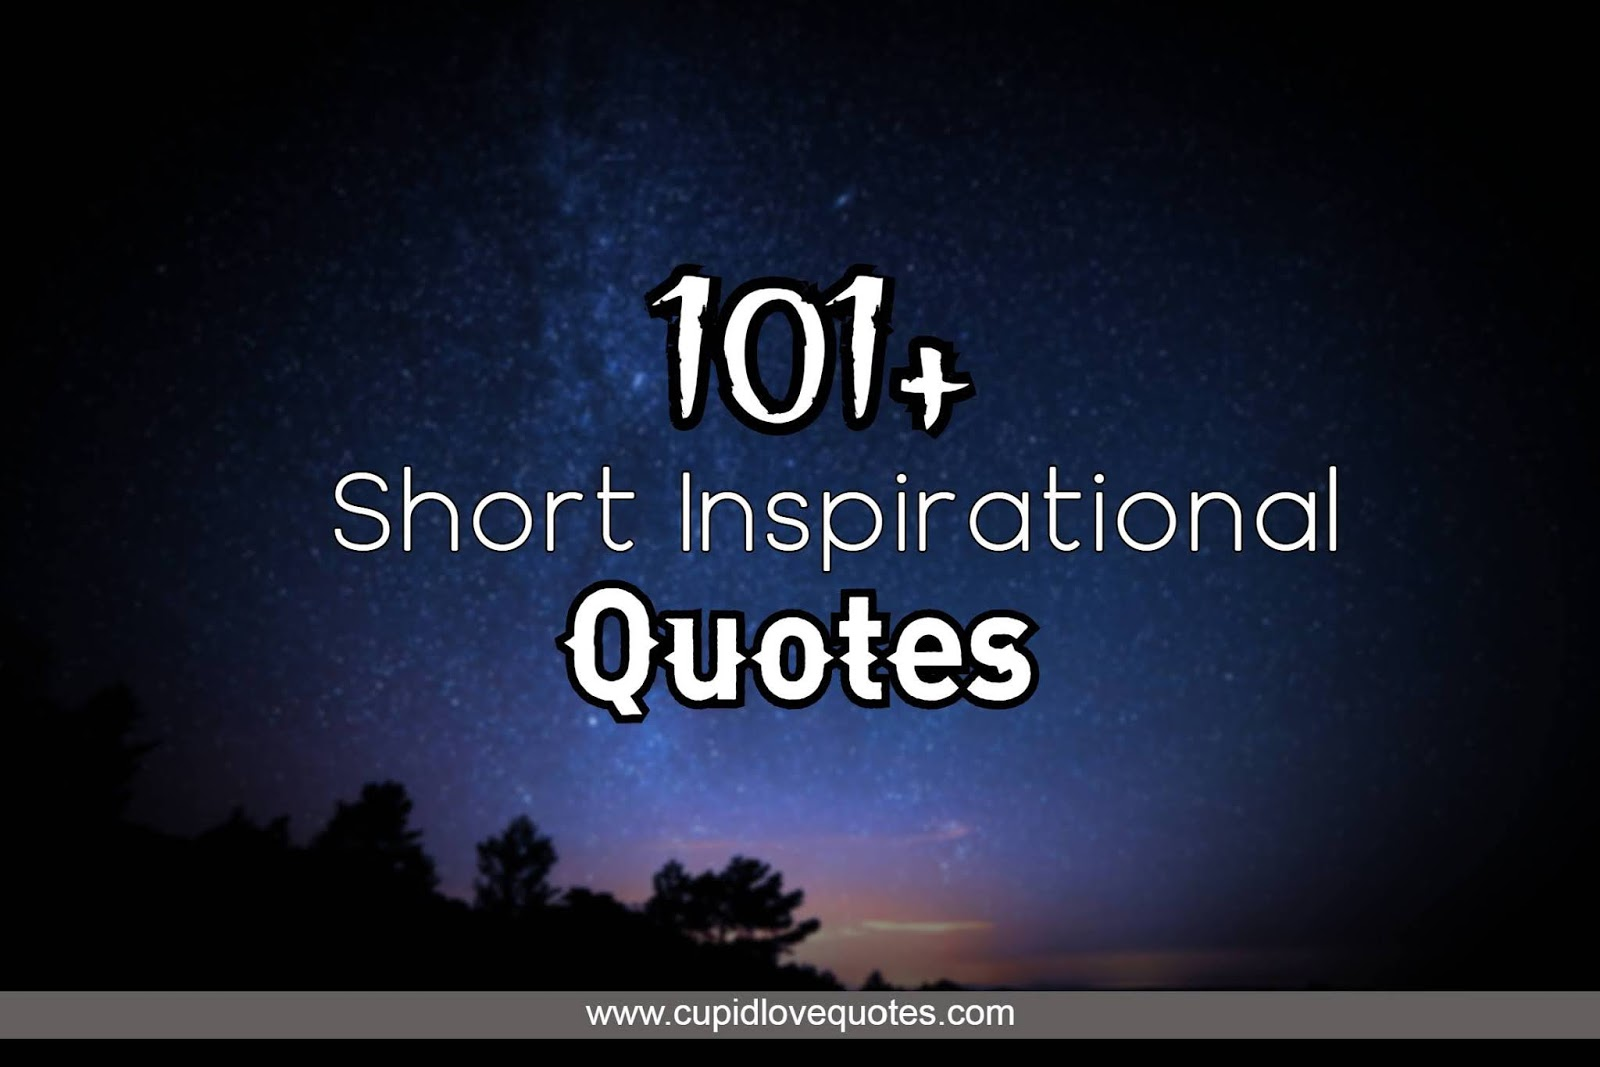 quotes about life and motivational quotes